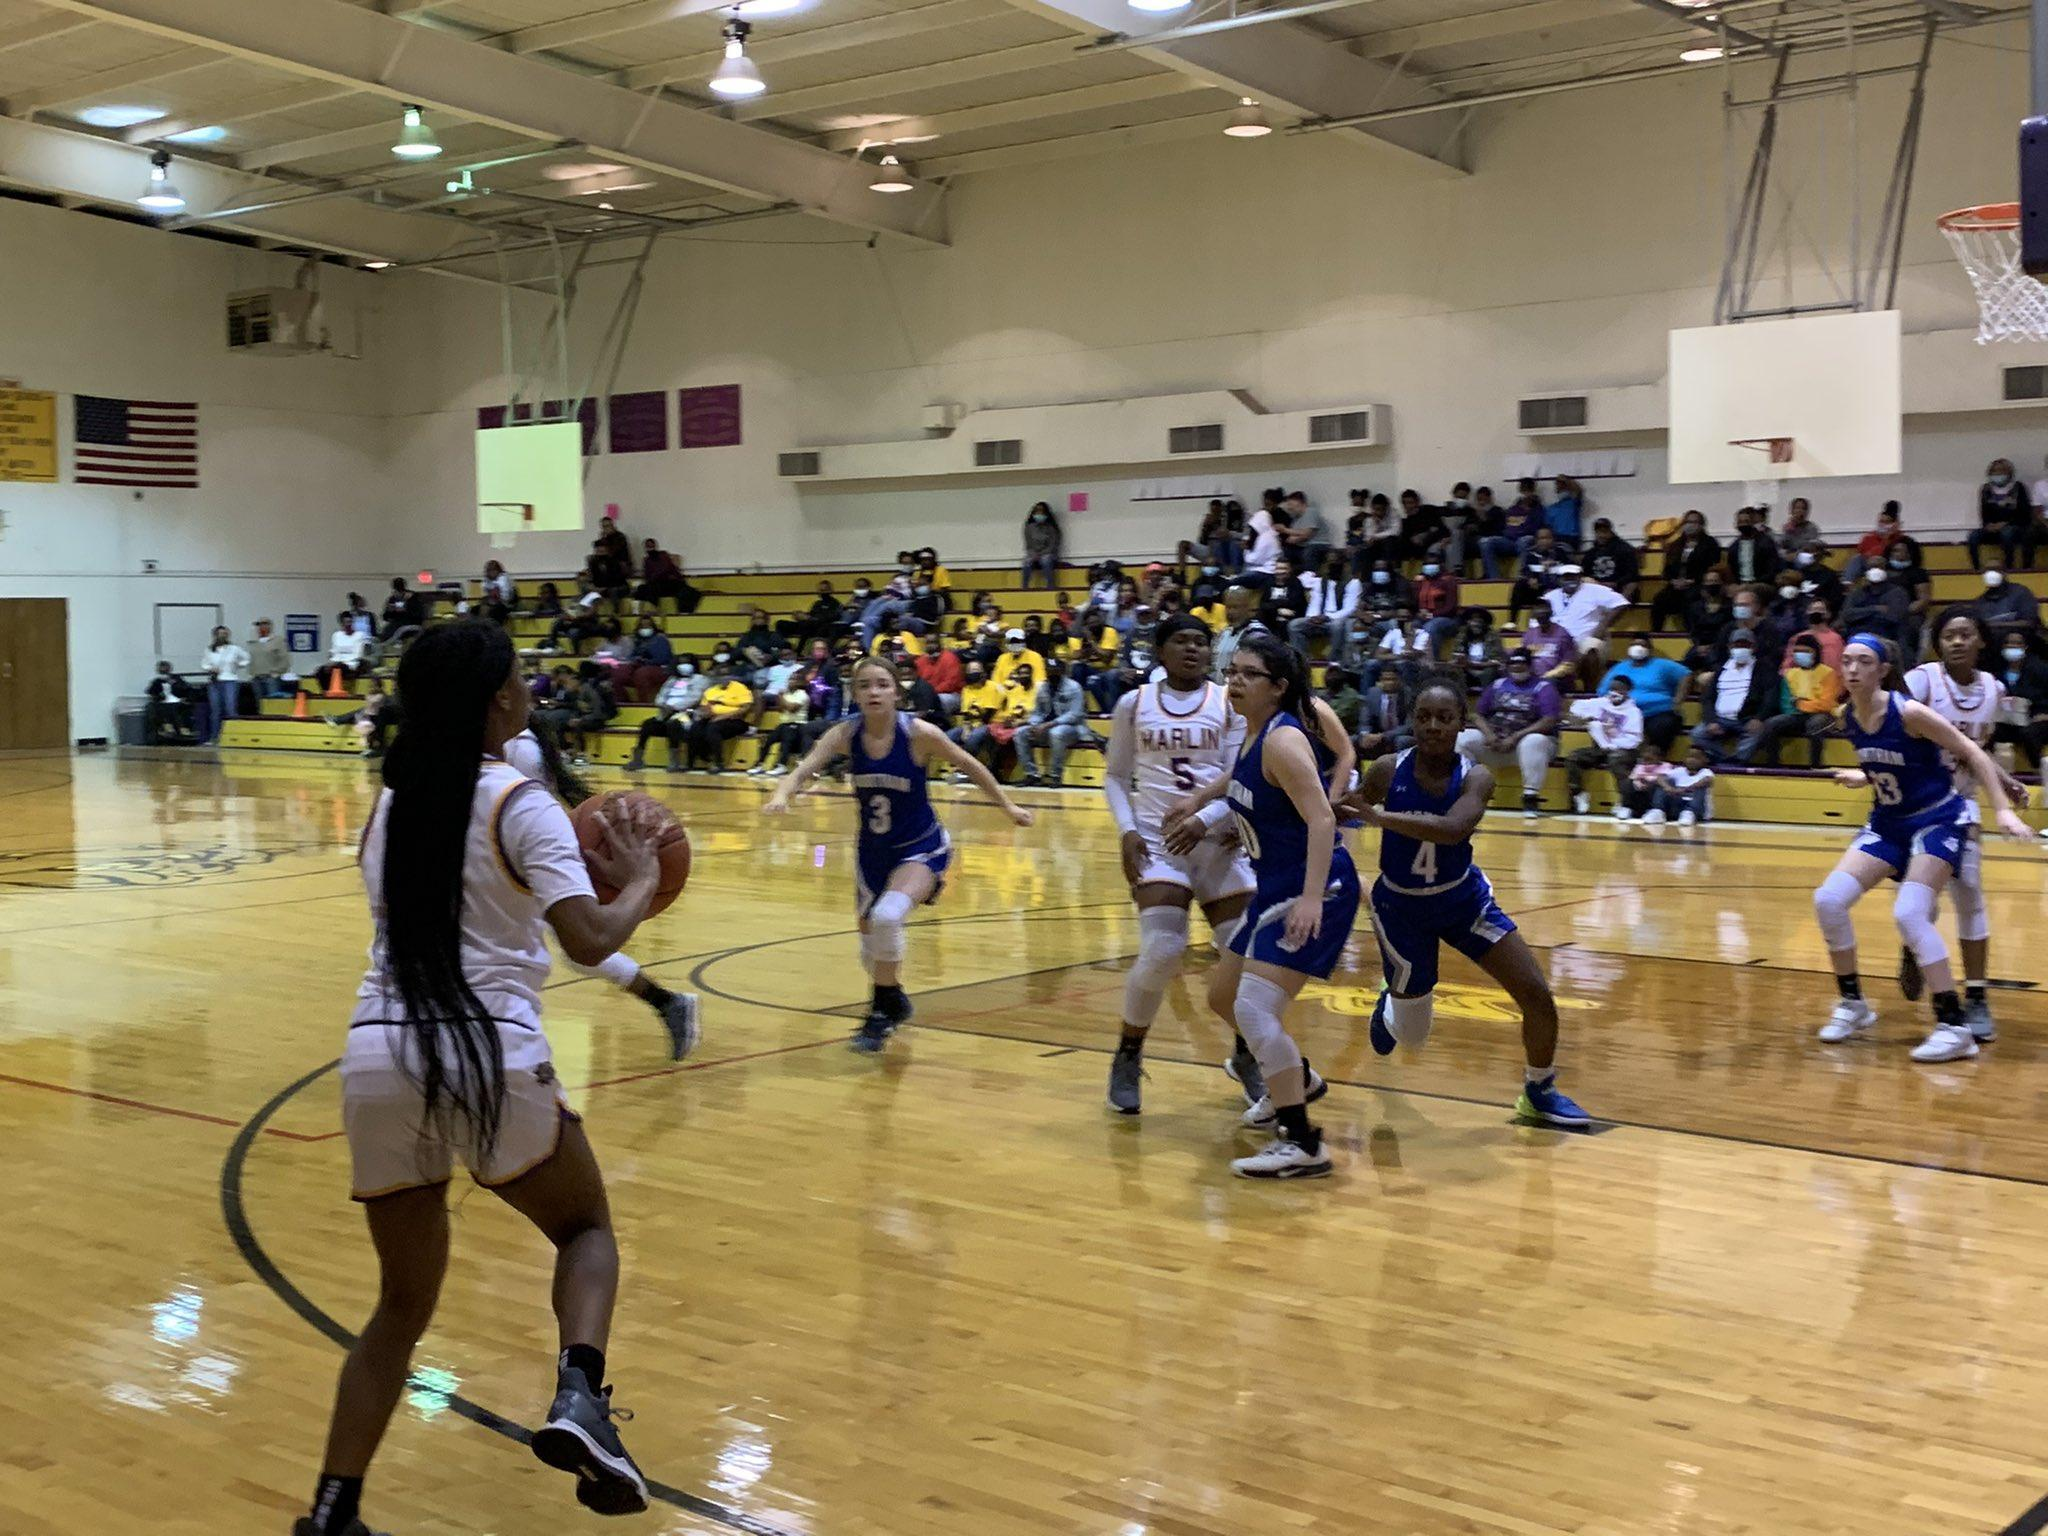 The Lady Bulldogs took on Wortham on Tuesday, February 2, where they bounced Wortham, scoring 66 points to Wortham's four.